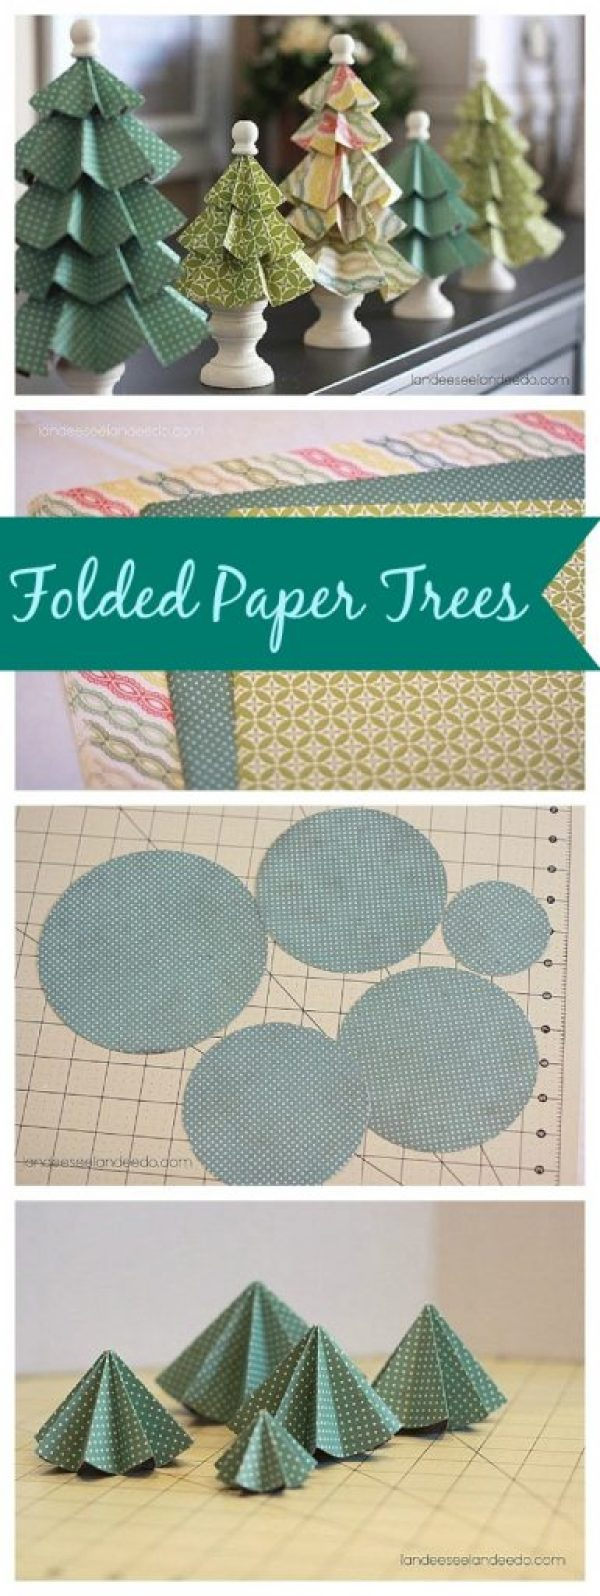 DIY Folded Paper Trees - Super CUTE and EASY Christmas Decorations!